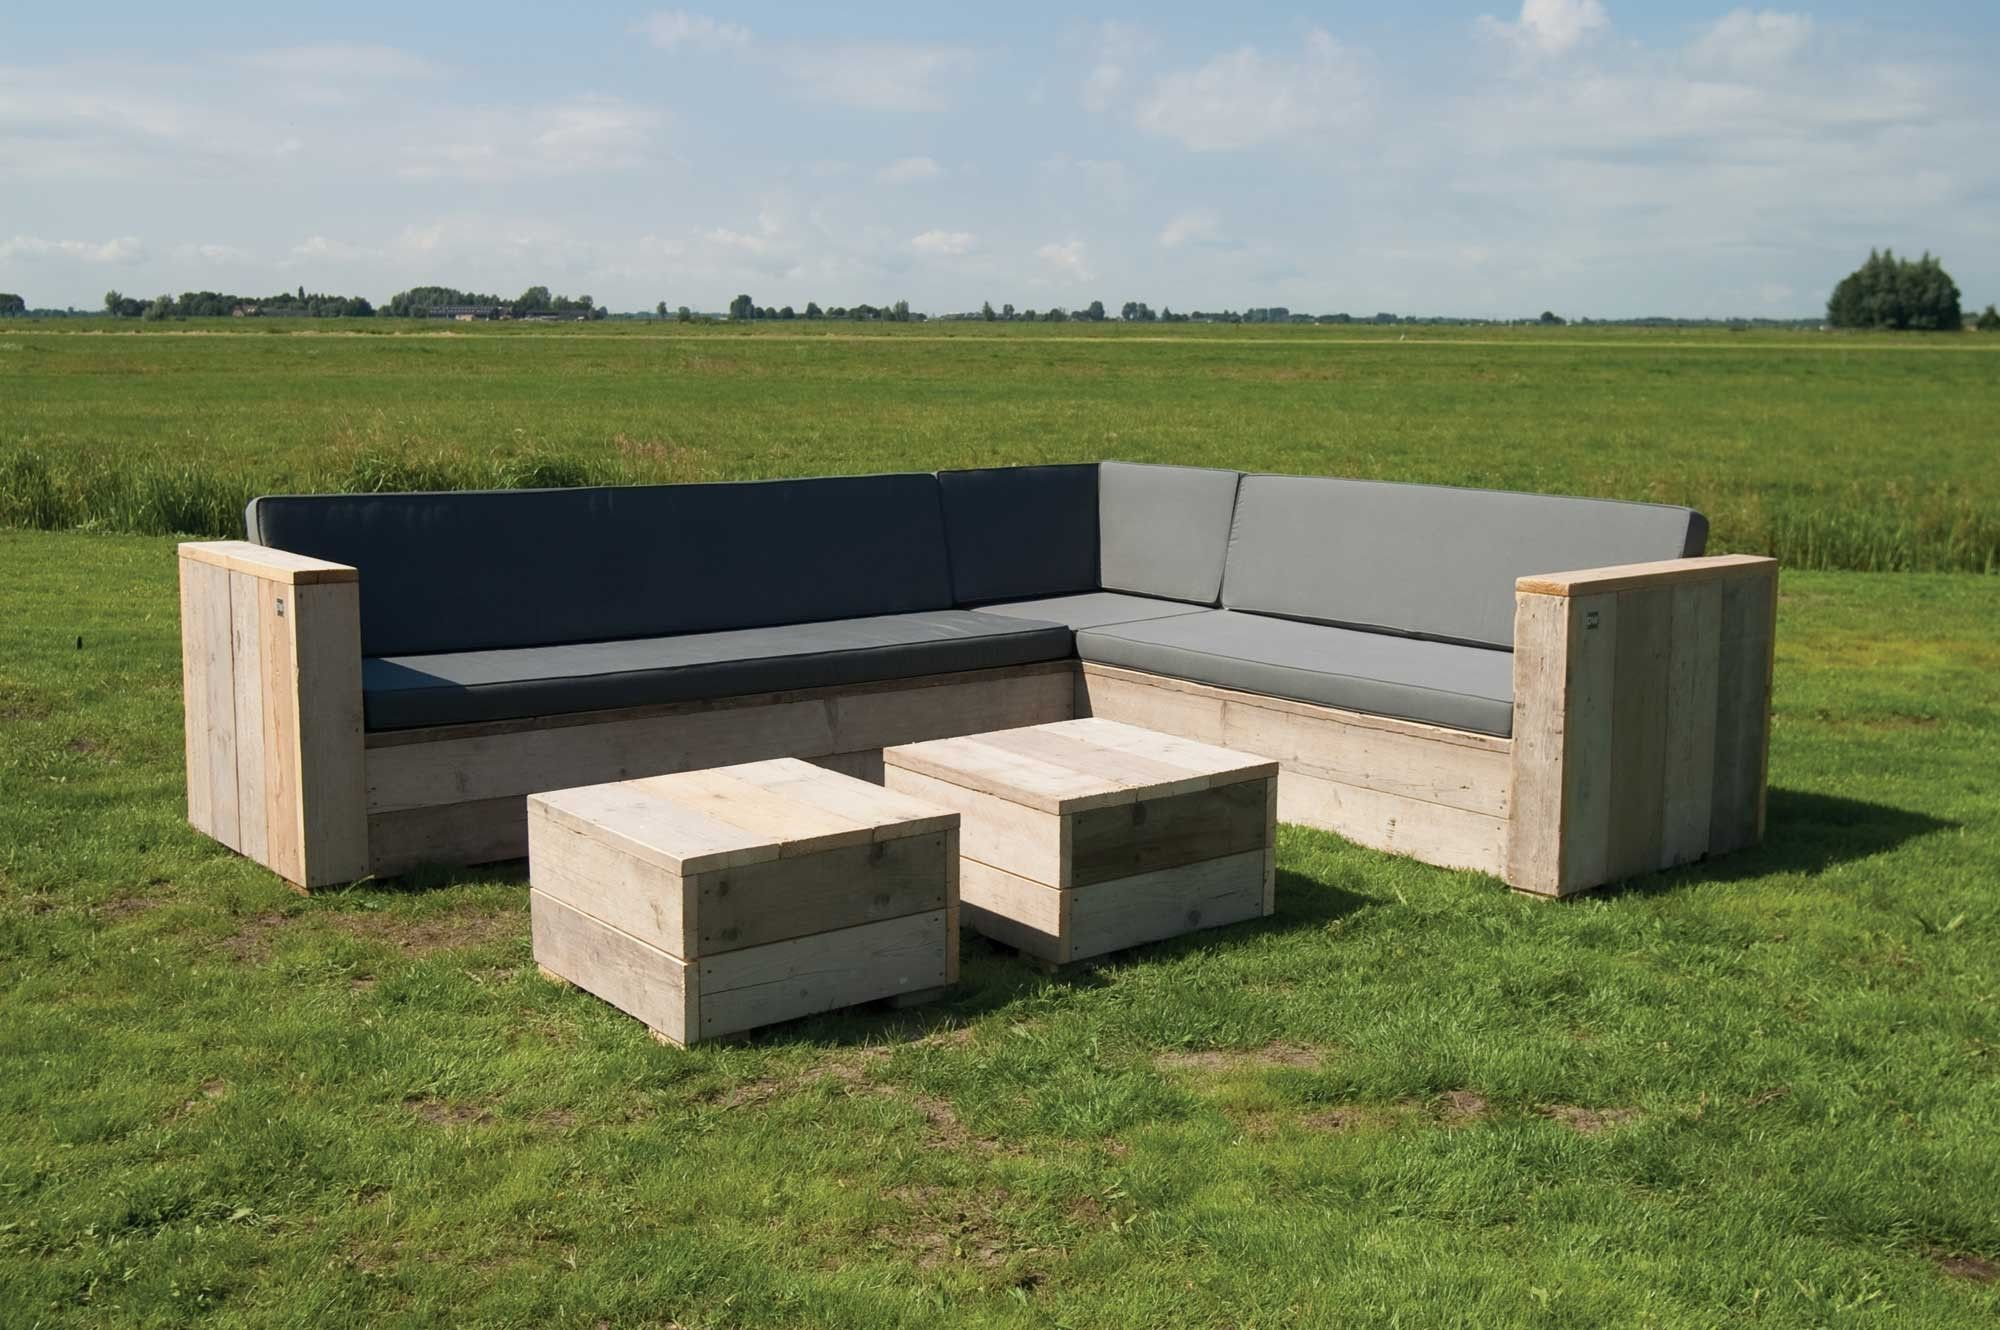 gartenset eckbank aus unbehandeltem ger stholz mit tisch lounge garten holz gartenm bel bauholz. Black Bedroom Furniture Sets. Home Design Ideas